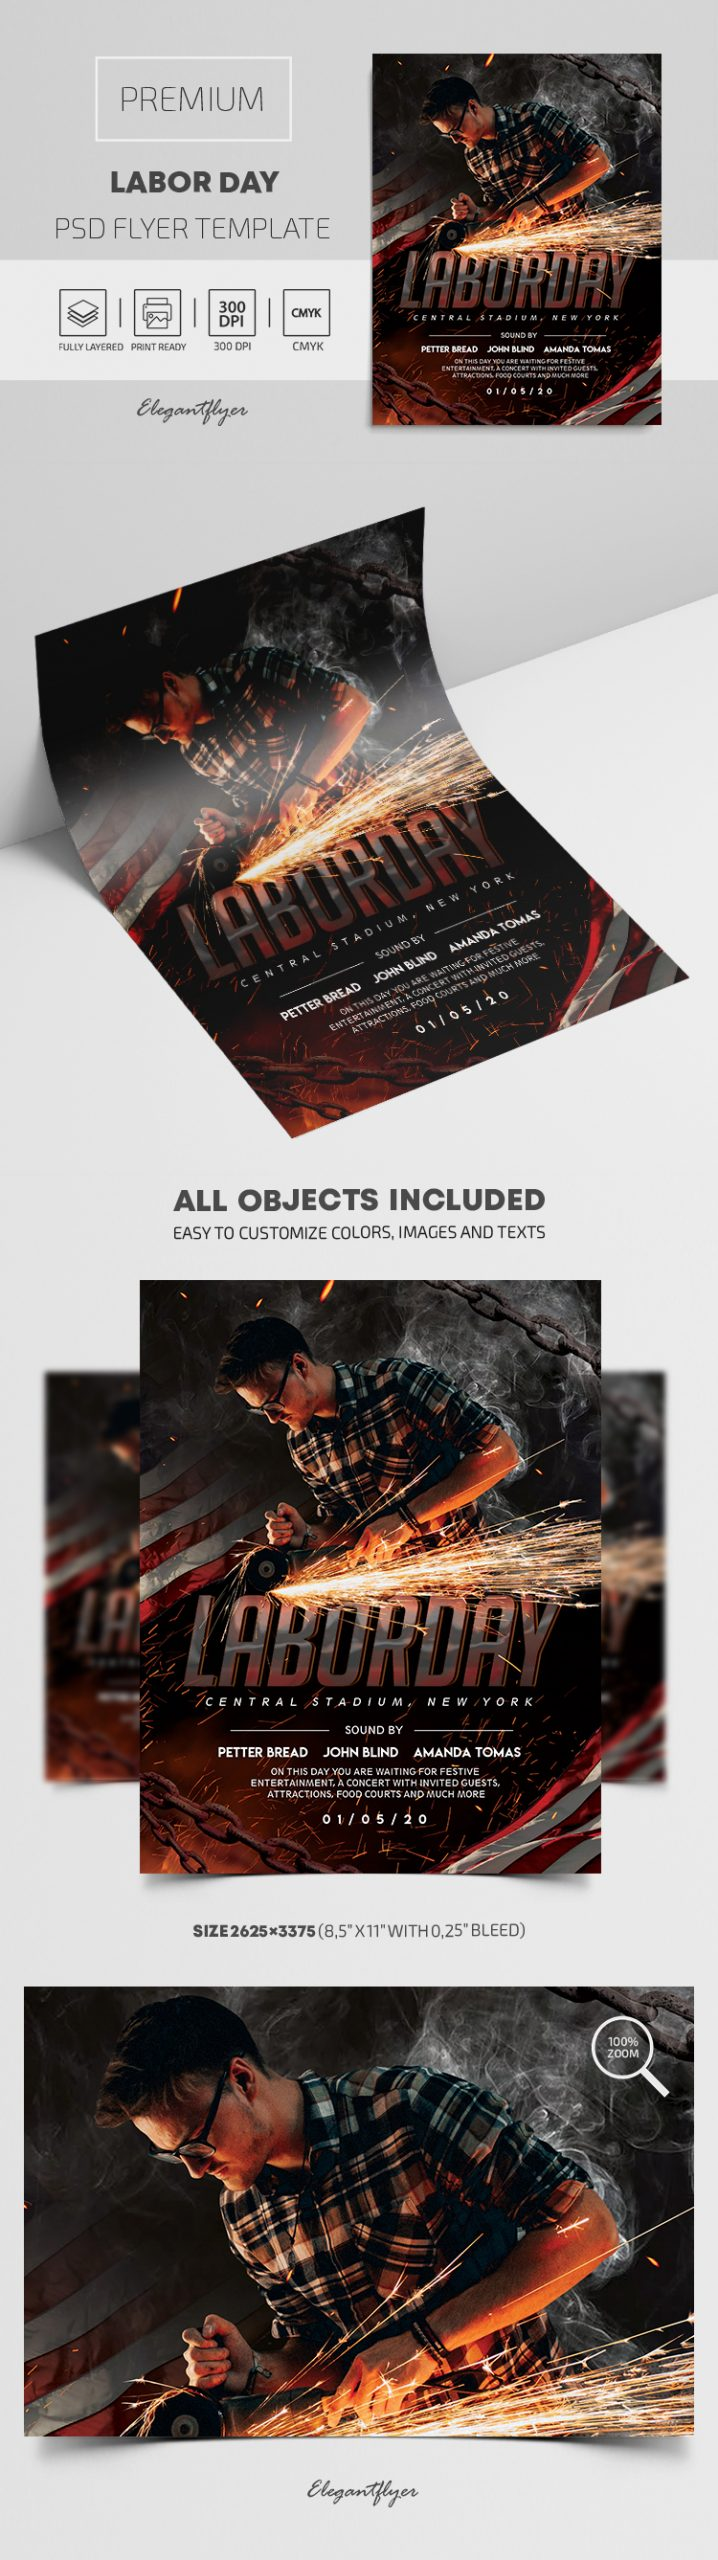 Labor Day – Premium PSD Flyer Template